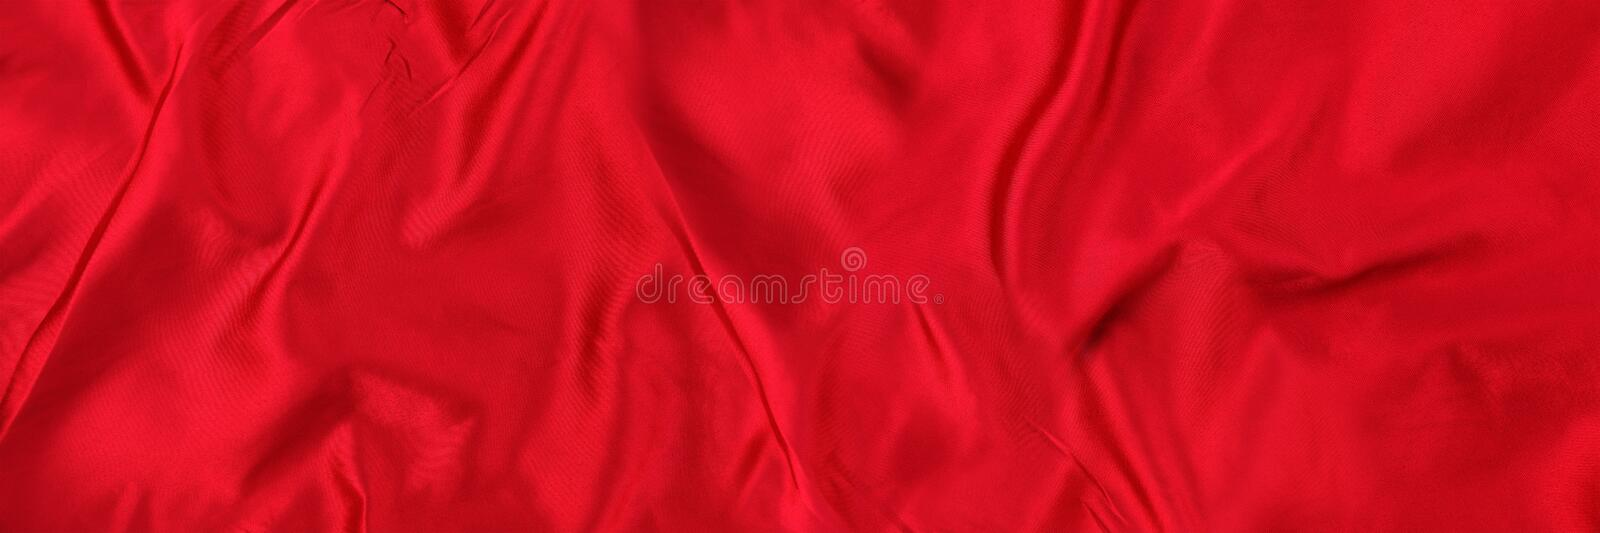 horizontal elegant silk texture for background and design royalty free stock photos